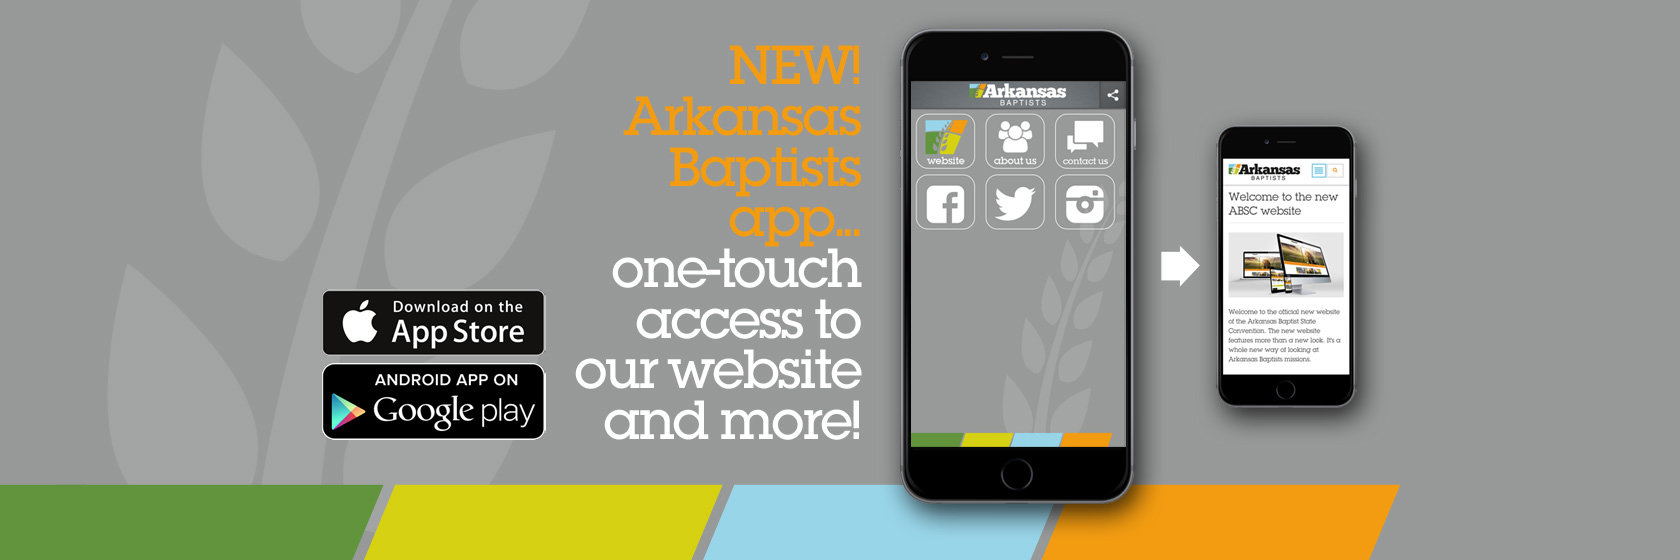 Download the Arkansas Baptists app now!